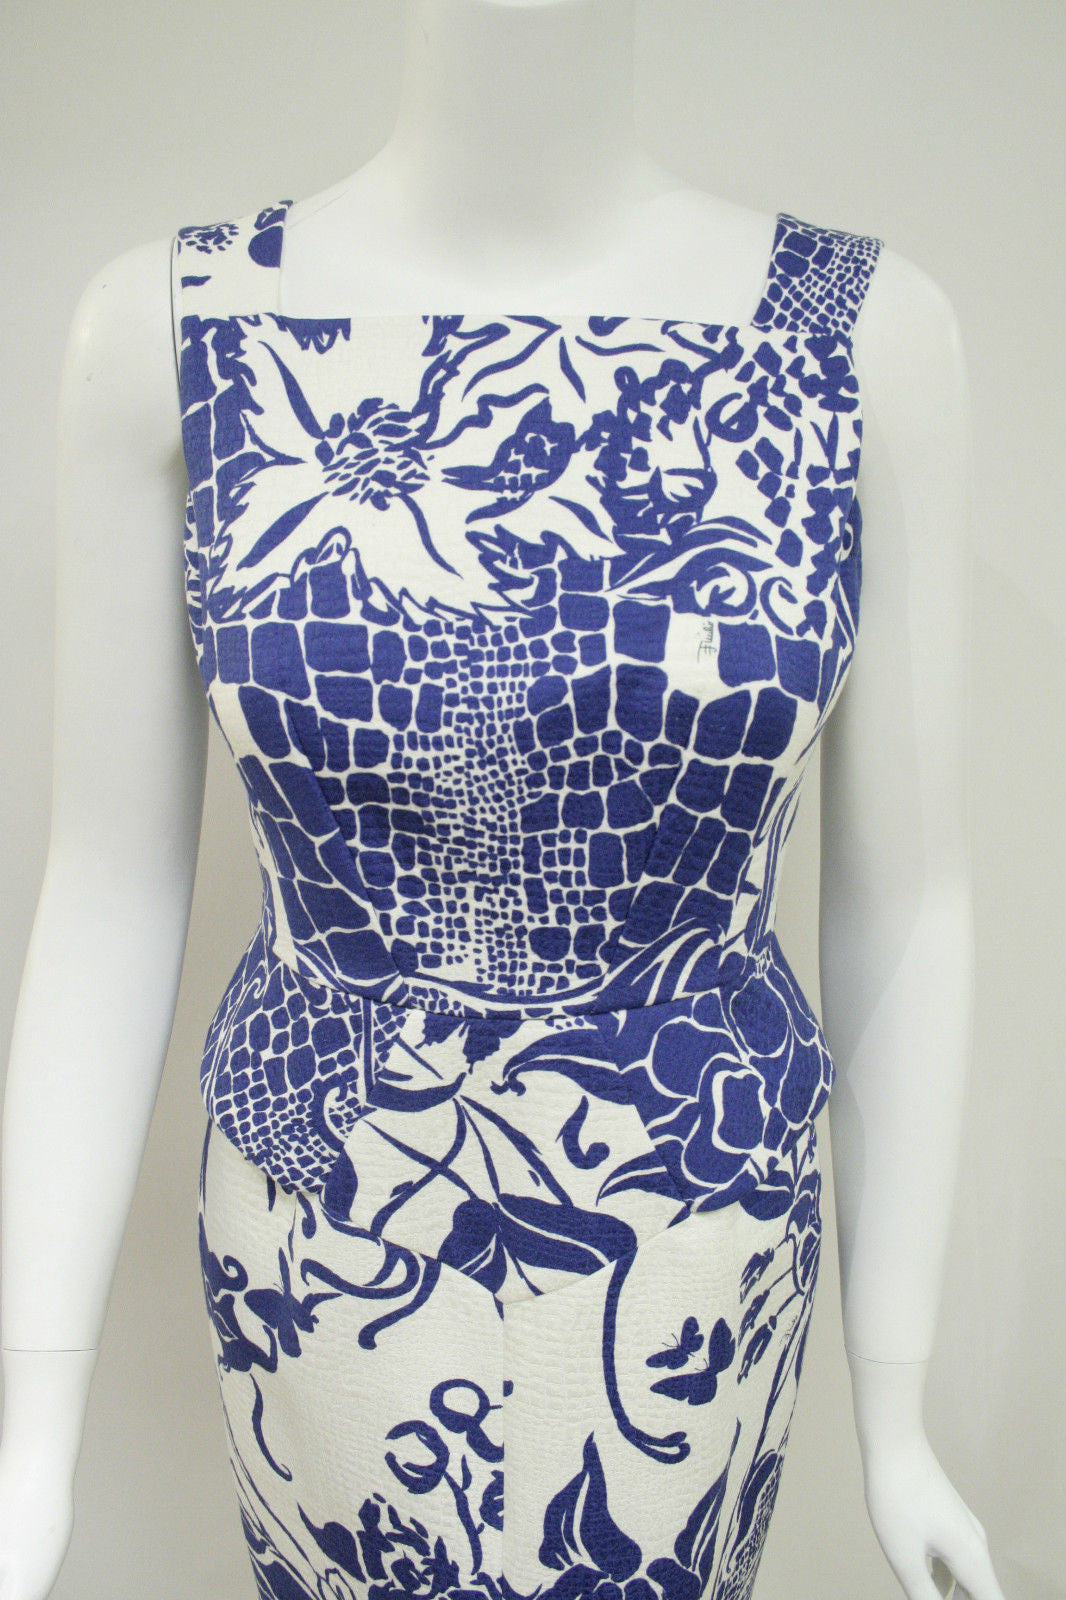 bisbiz.com PUCCI   White/Royal-Blue Floral-Print Cotton Blend  Sleeveless Dress  Size: IT 42 / US 6 - Bis Luxury Resale